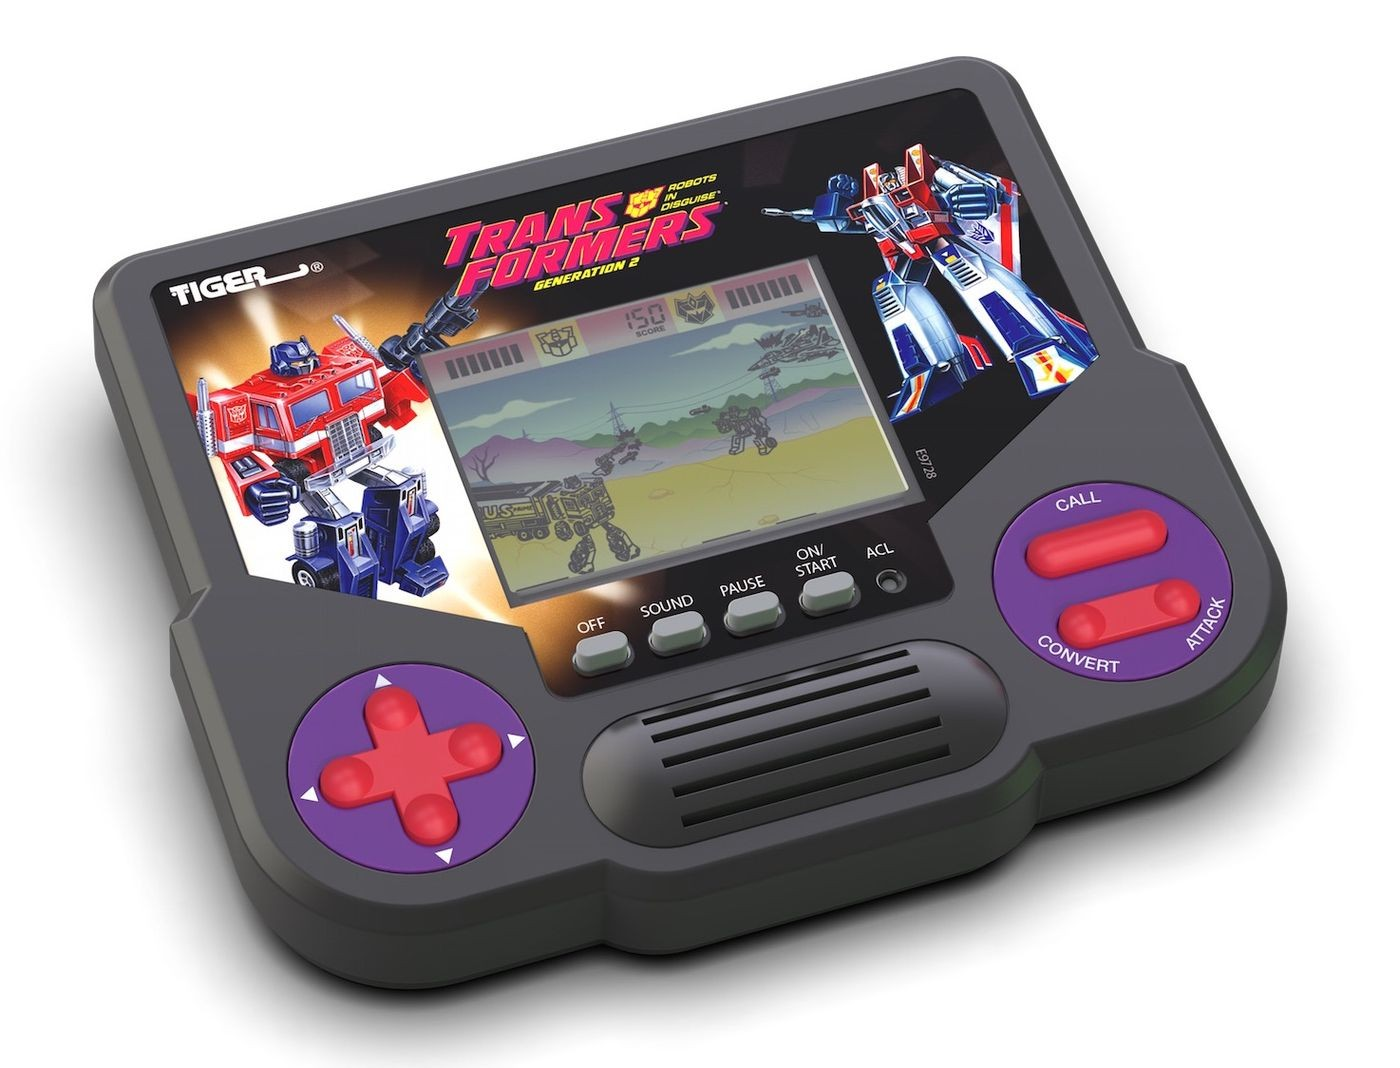 Transformers News: Hasbro To Release New Tiger Electronics LCD Handhelds, Including Transformers Generation 2 Title